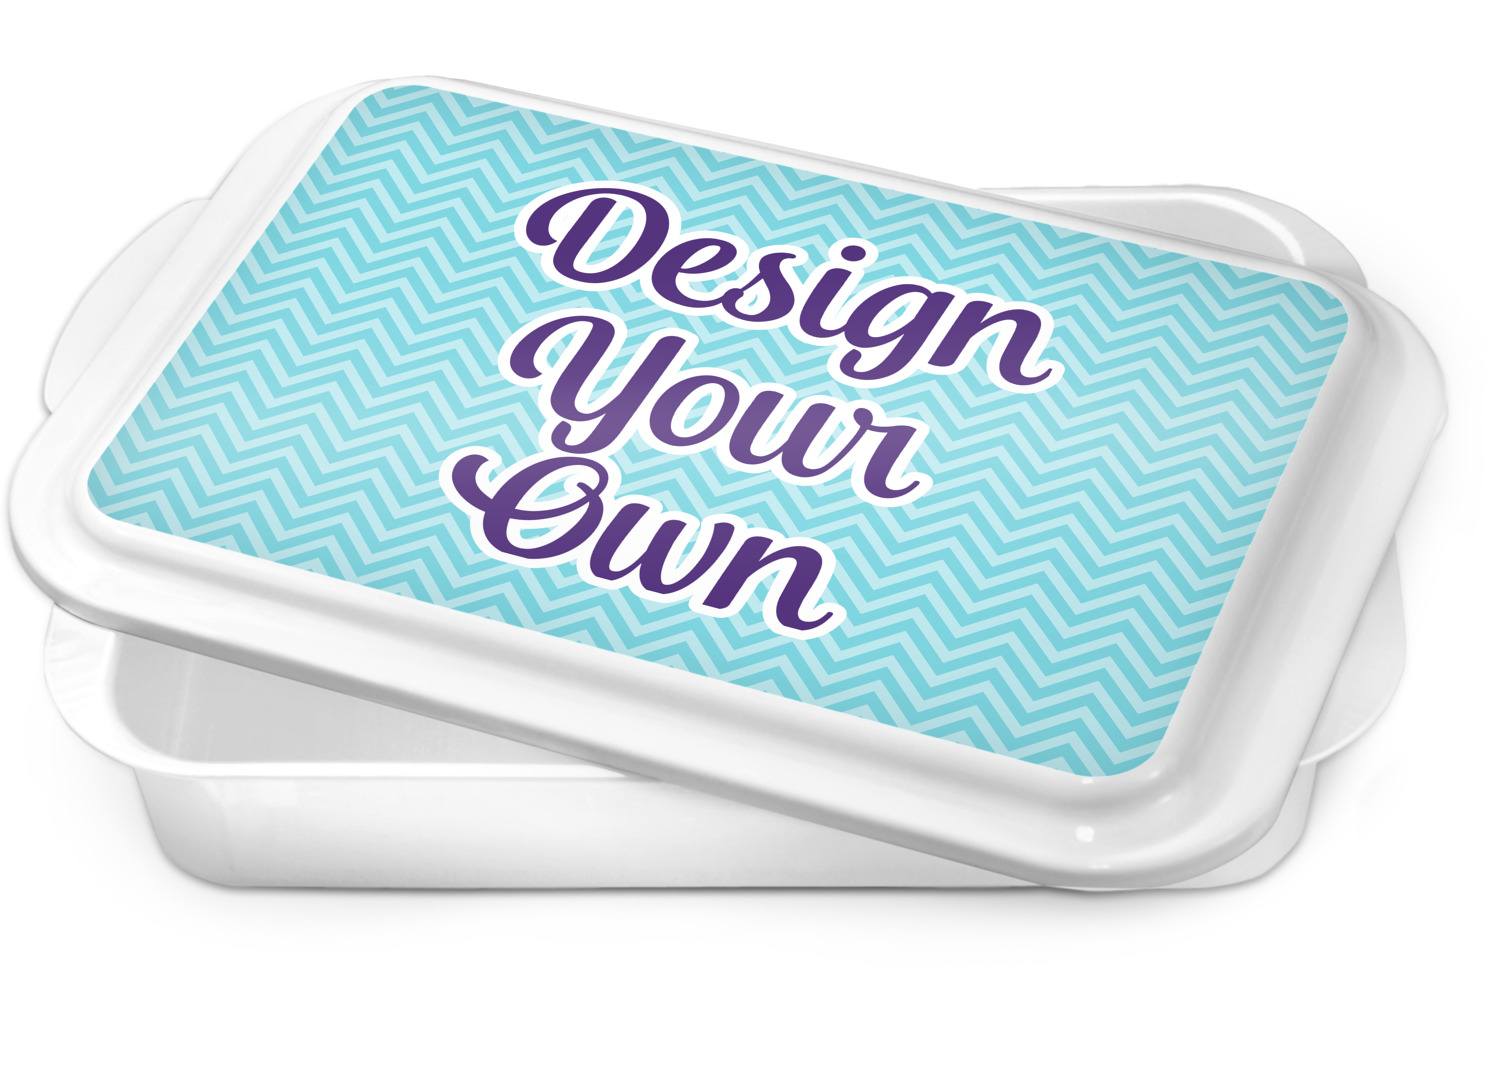 Design Your Own Cake Stencil : Design Your Own Cake Pan (Personalized) - YouCustomizeIt